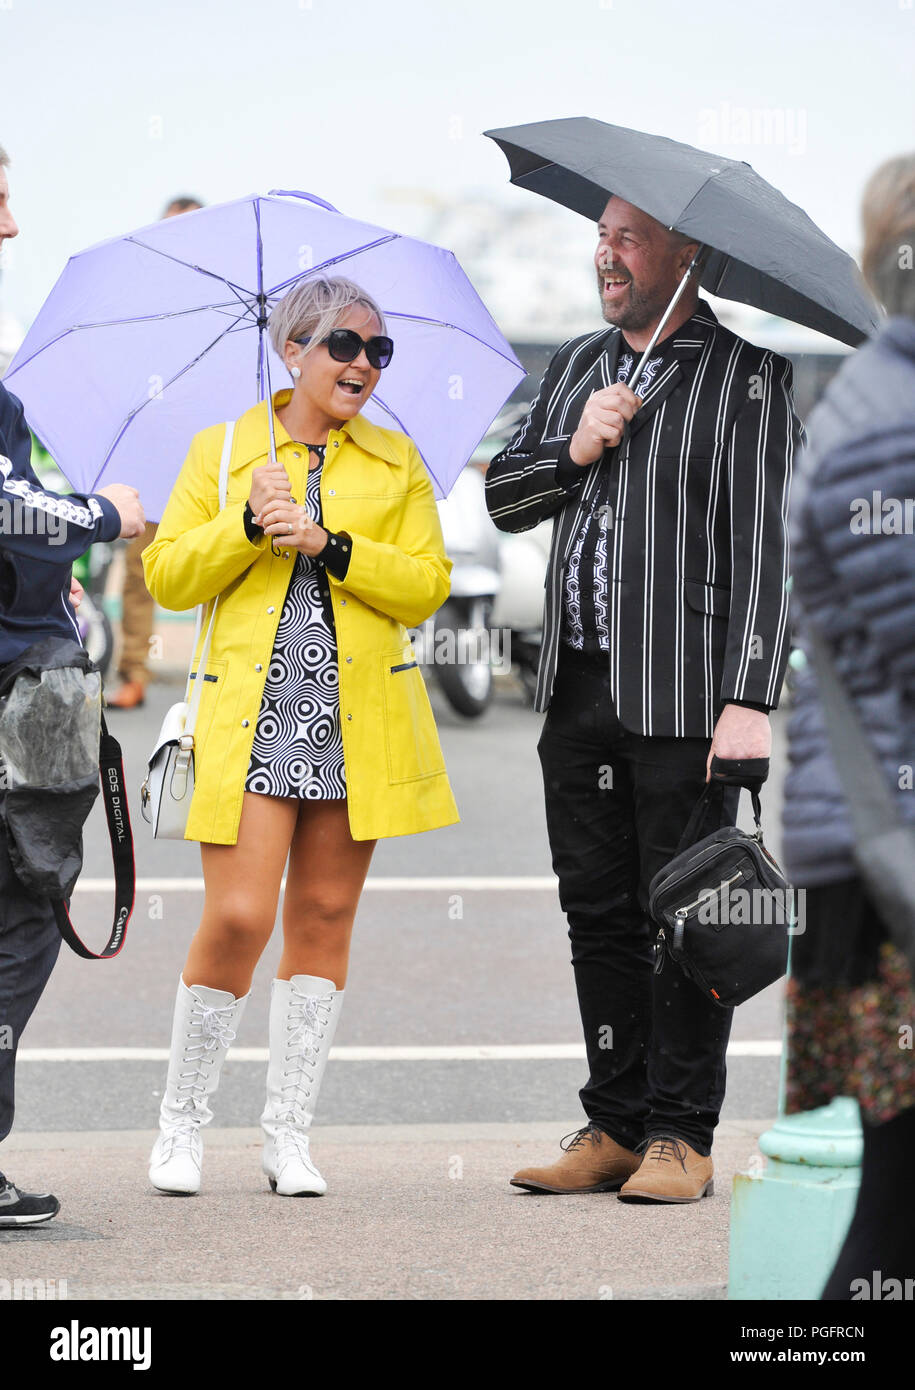 Brighton, UK. 26 August 2018.  Despite the bad weather Mods with their scooters descend on Brighton seafront today as part of their Mod Weekender event . Every August Bank Holiday hundreds of Mods from around the country descend on Brighton for their traditional event which depending on the weather includes a ride out to Beach Head inspired by the film Quadrophenia Photograph taken by Simon Dack Credit: Simon Dack/Alamy Live News Credit: Simon Dack/Alamy Live News - Stock Image